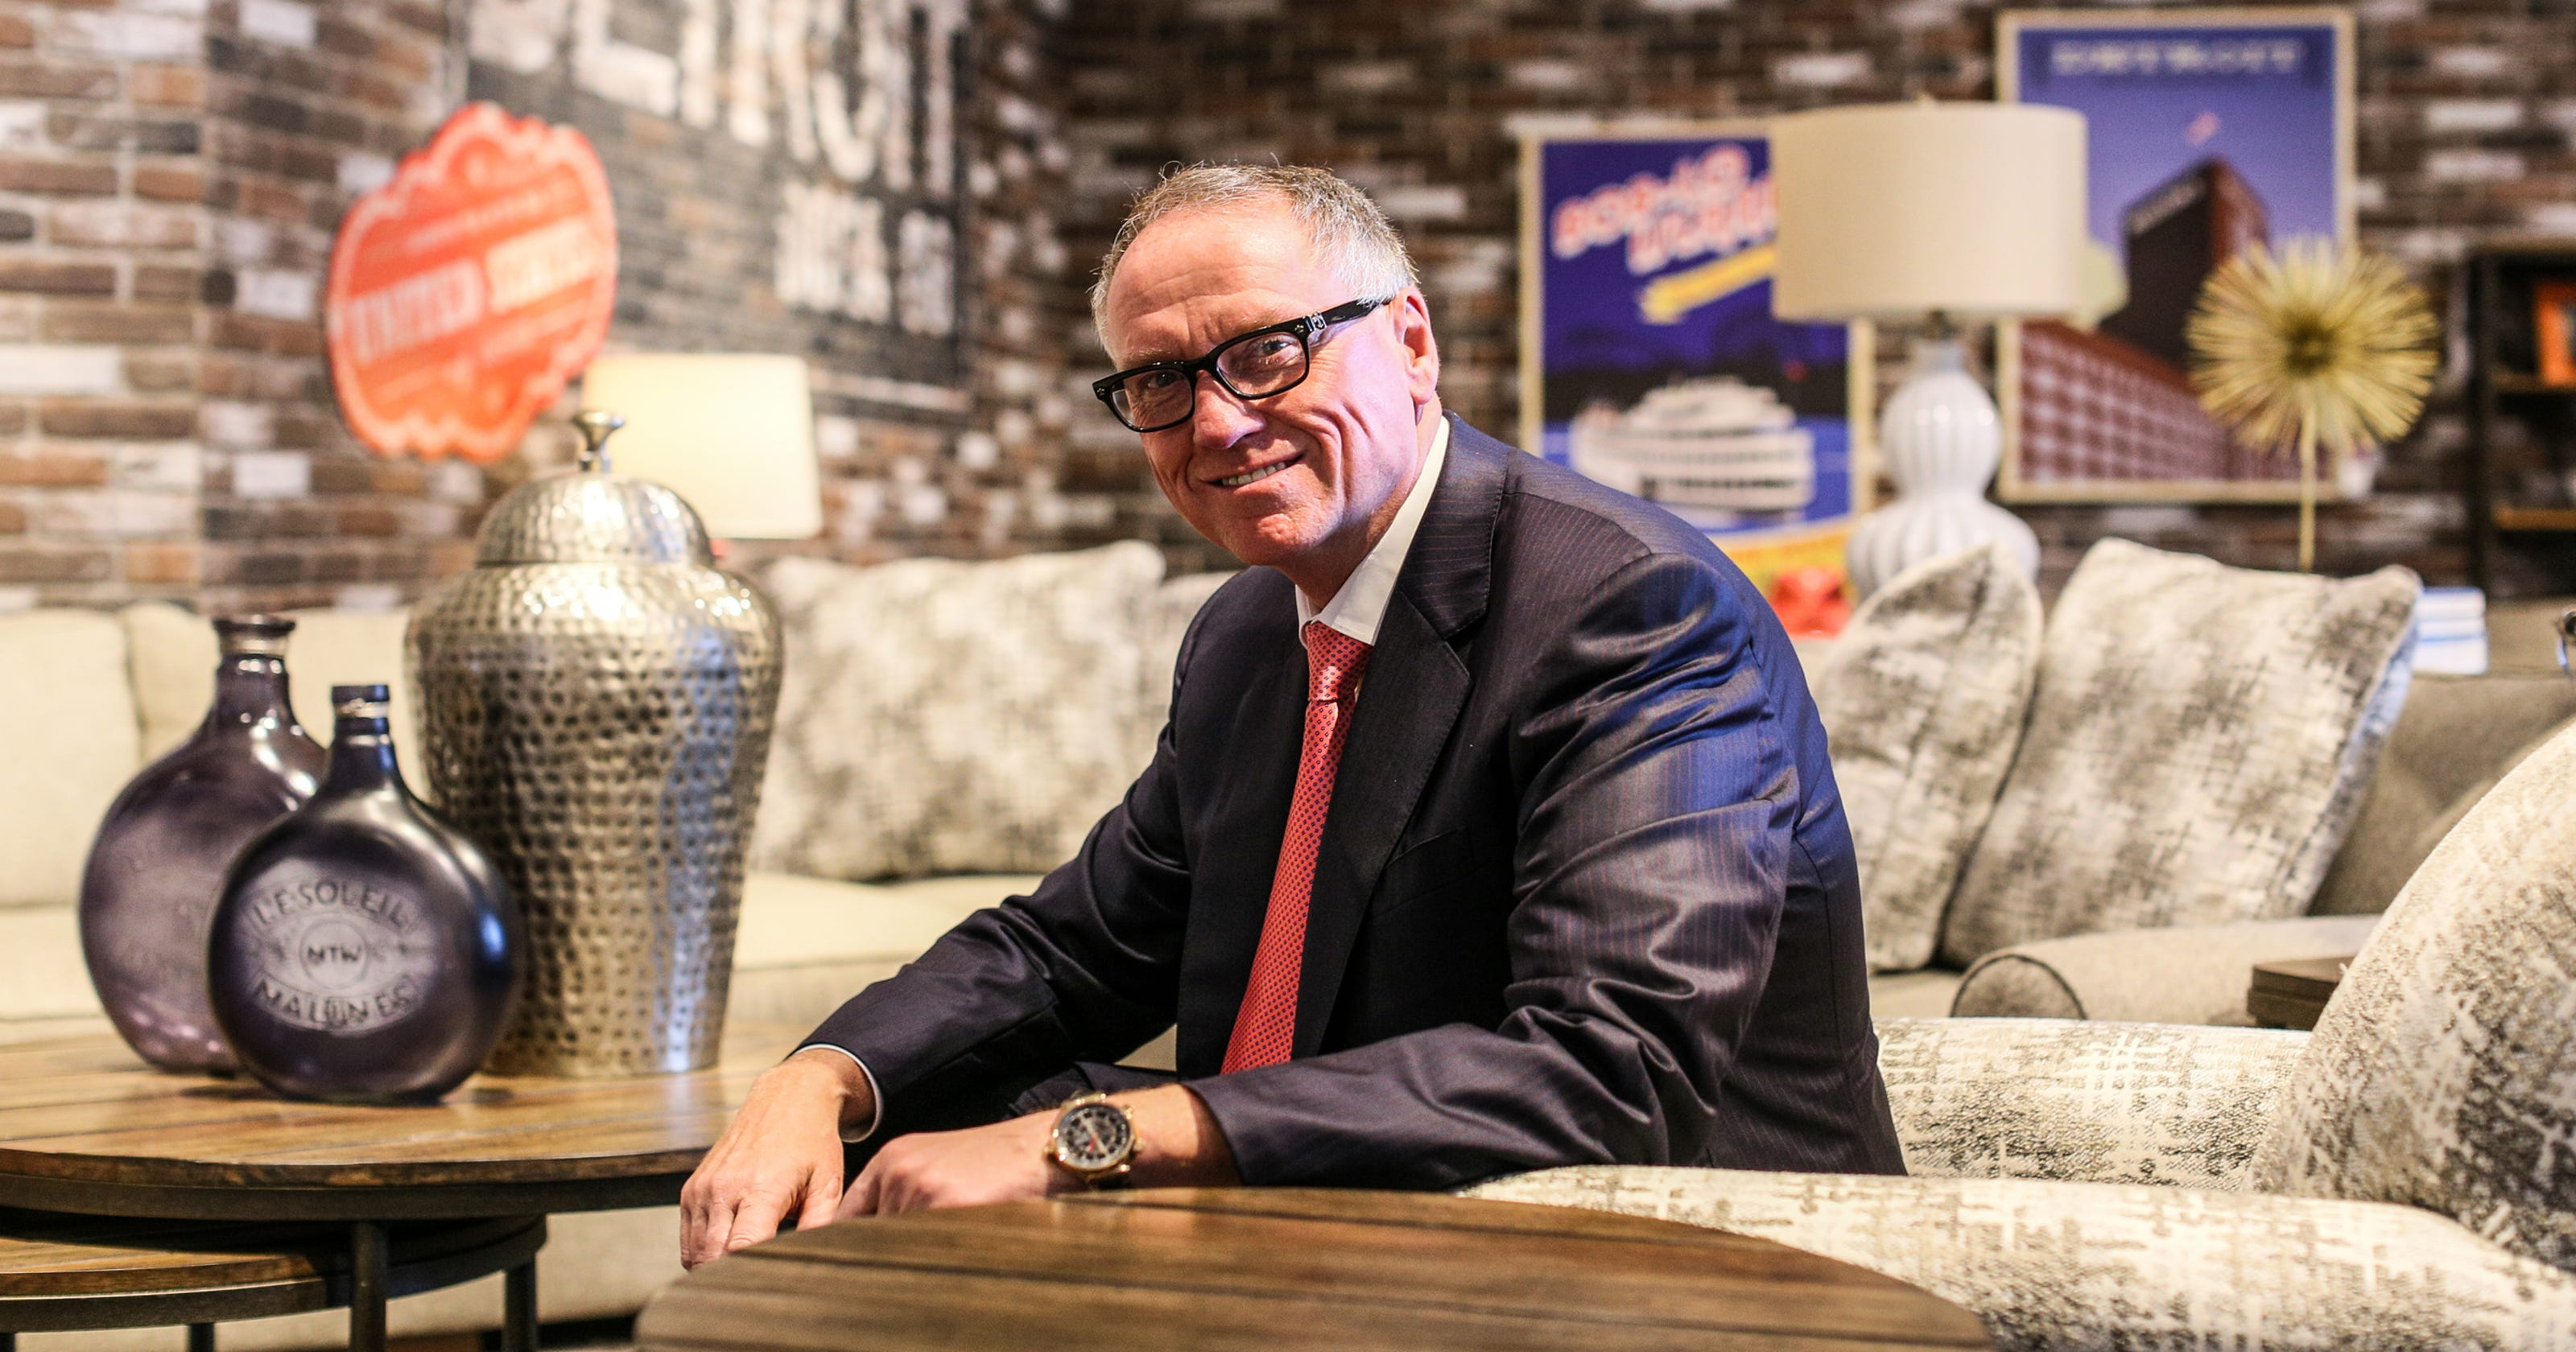 Art Van Furnitures CEO Asking Workers Has Anyone Tried To Fire You